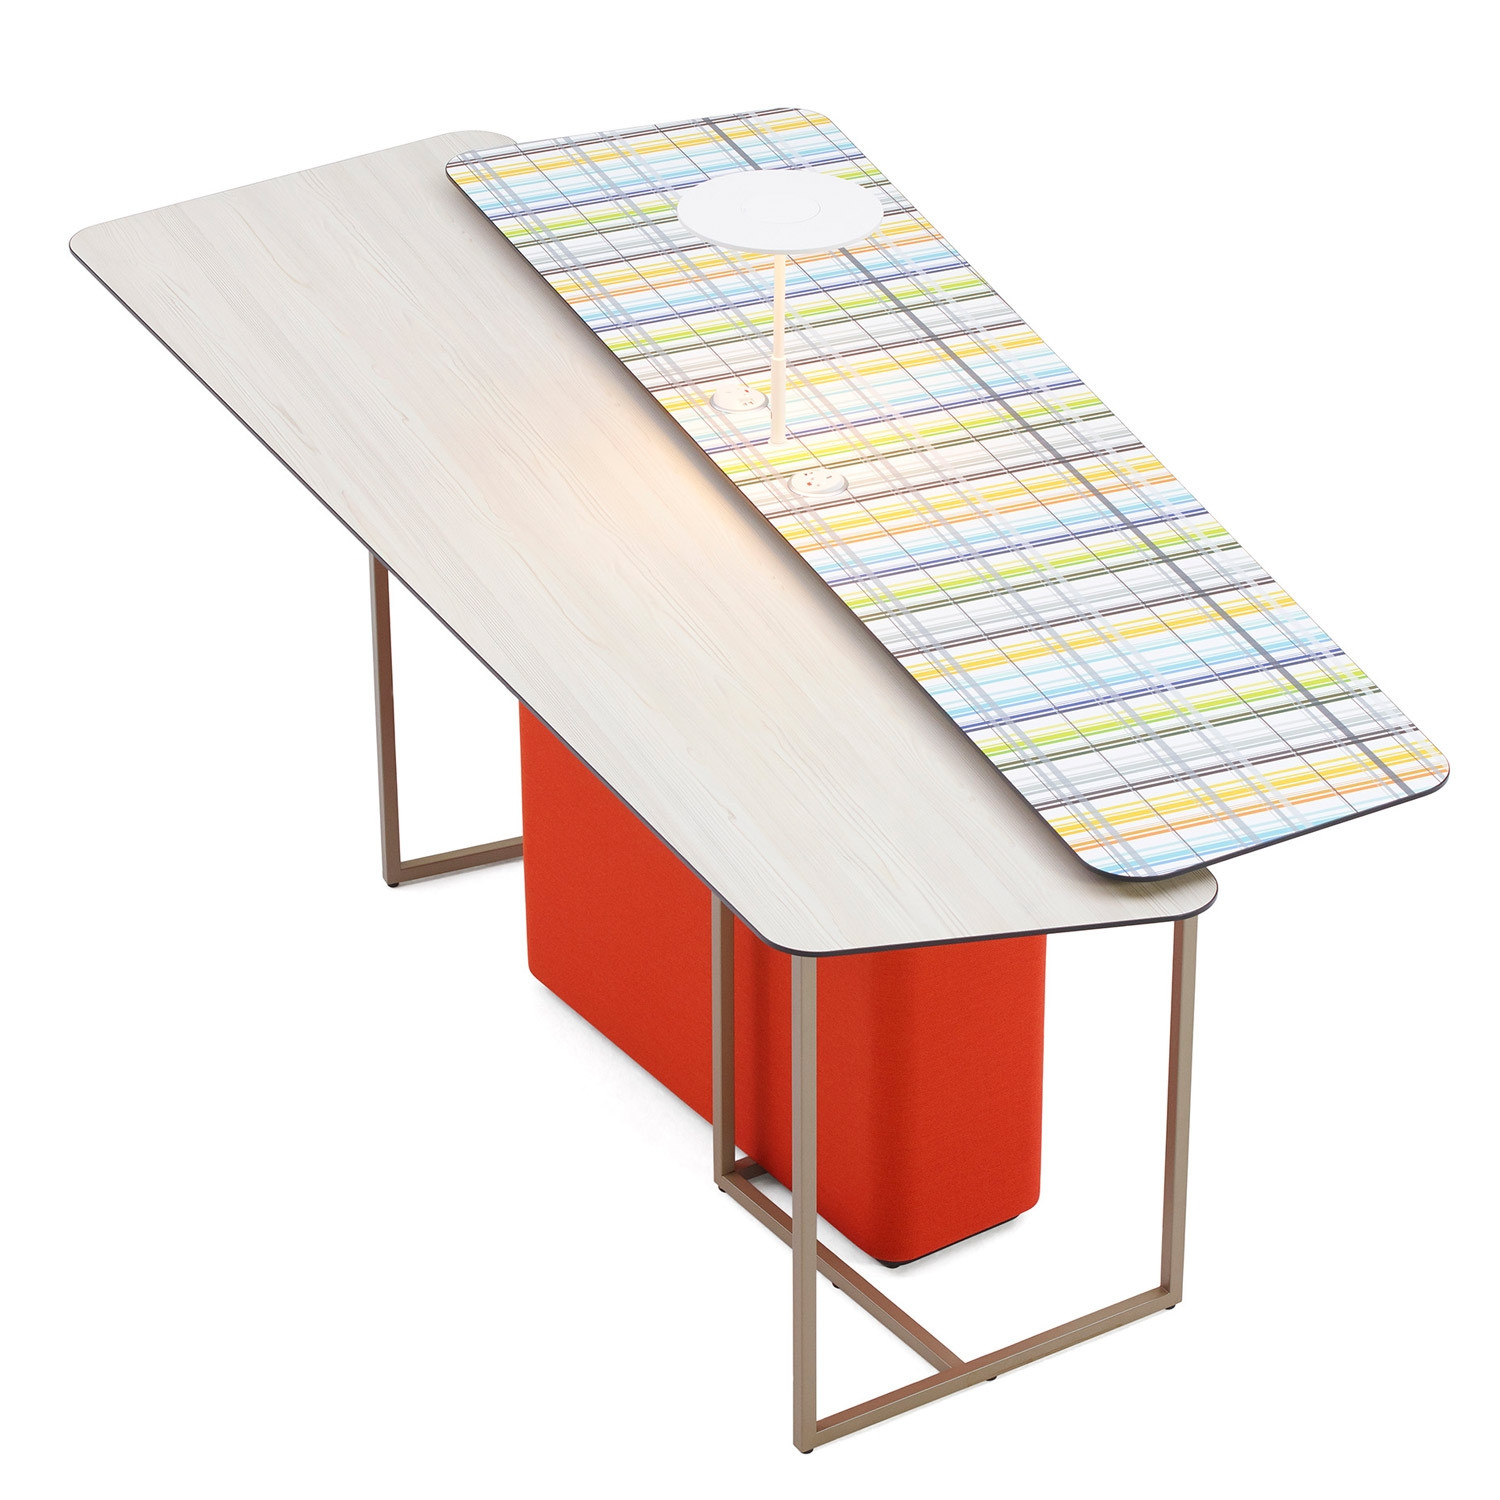 Fielding Café Poseur Table